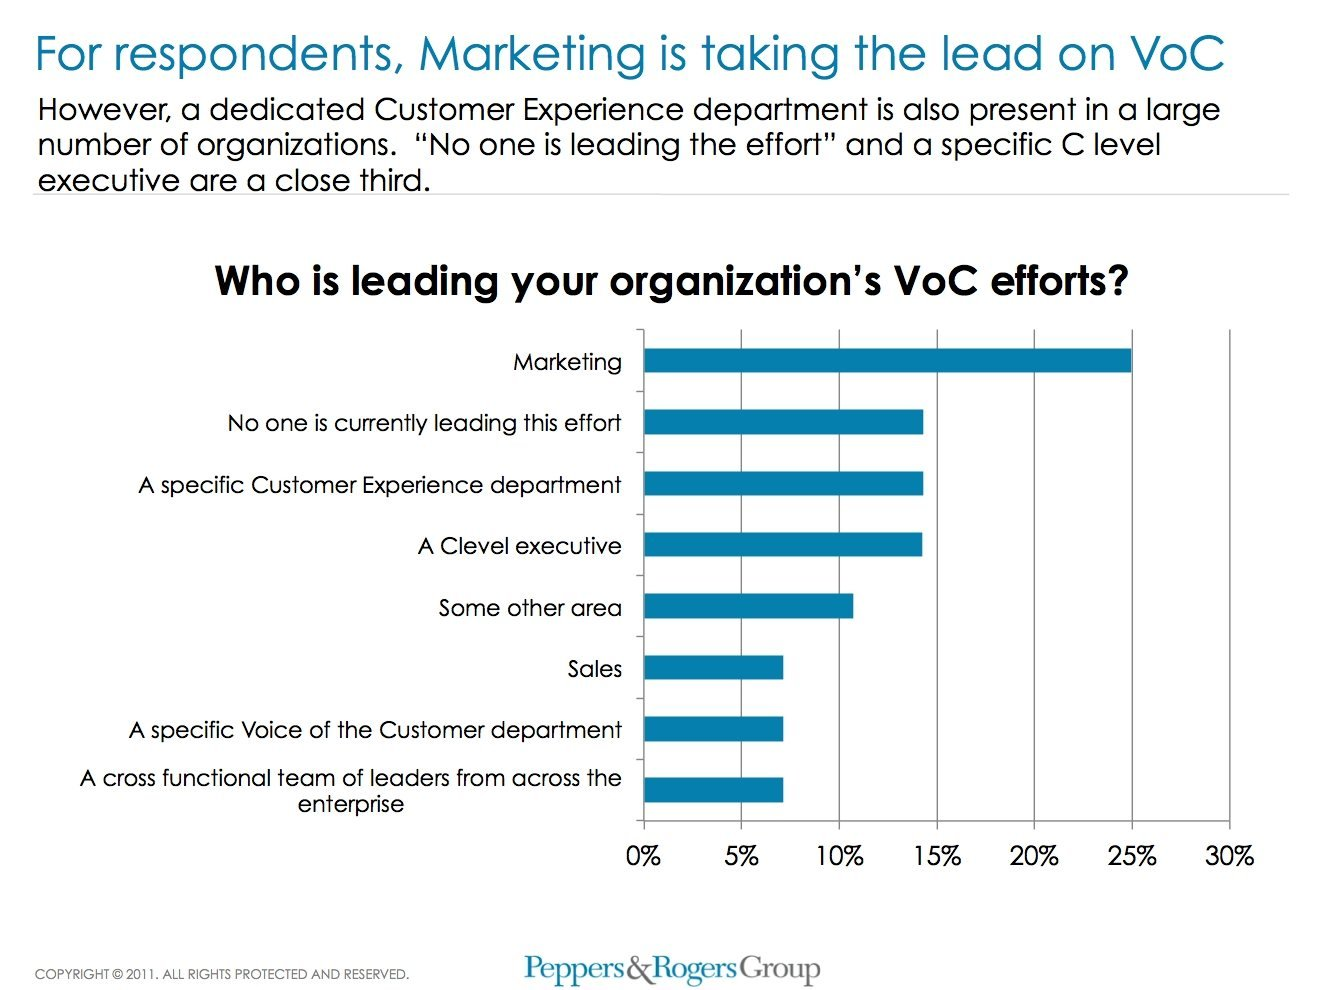 Bild 3: For respondents, Marketing is taking the lead on VoC.